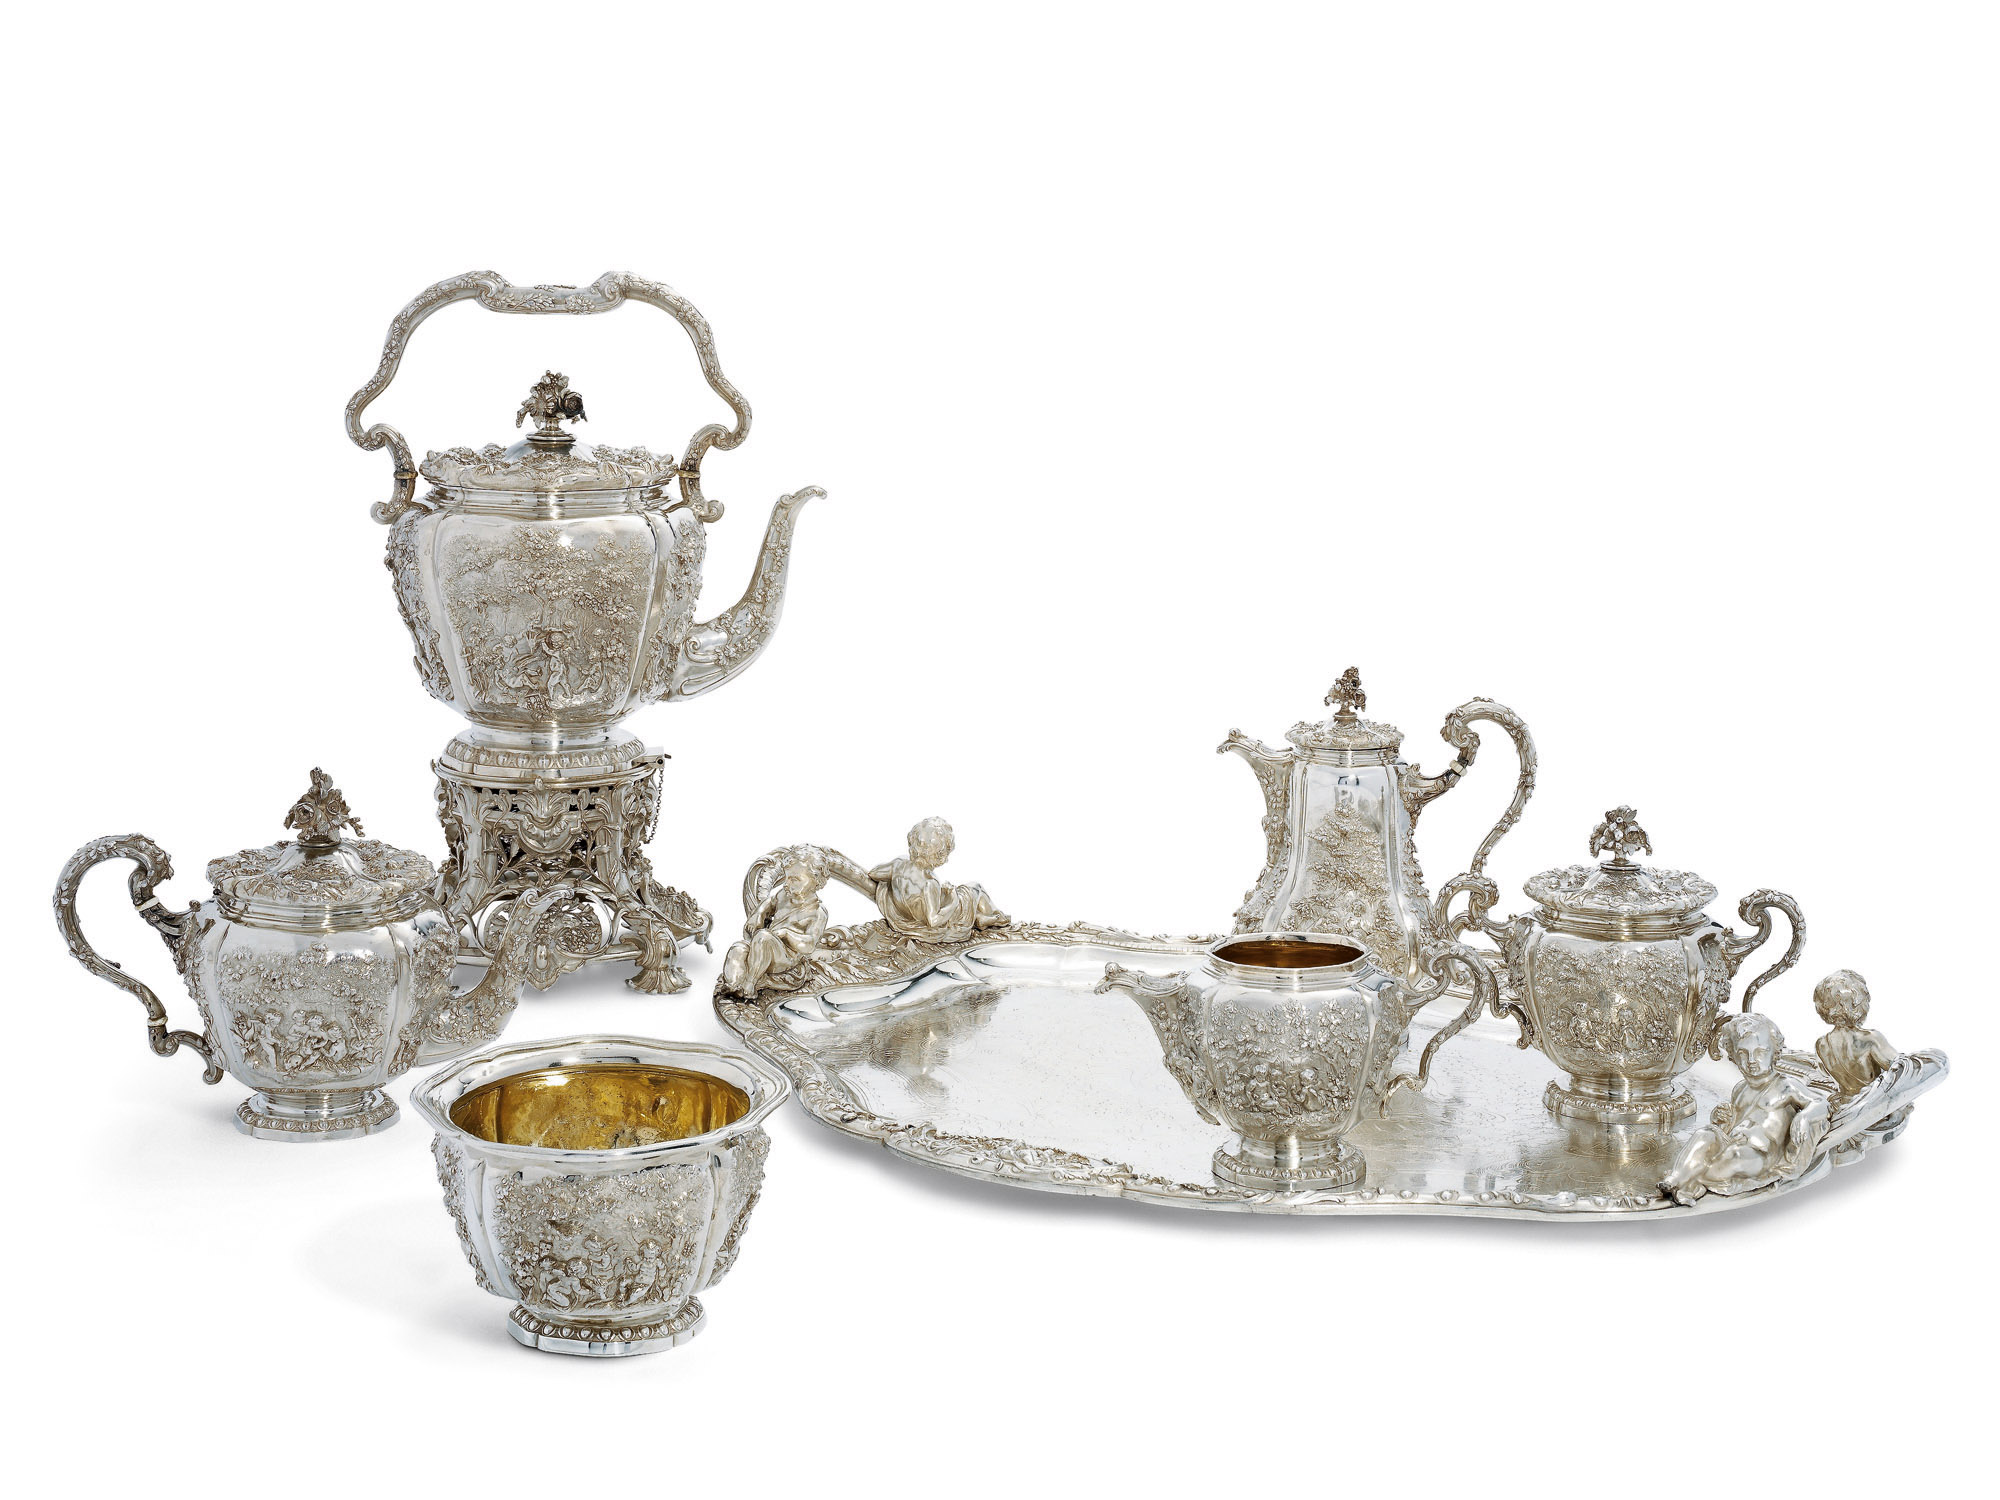 A MASSIVE FRENCH SILVER FIVE-PIECE TEA AND COFFEE-SERVICE WITH A TRAY EN SUITE